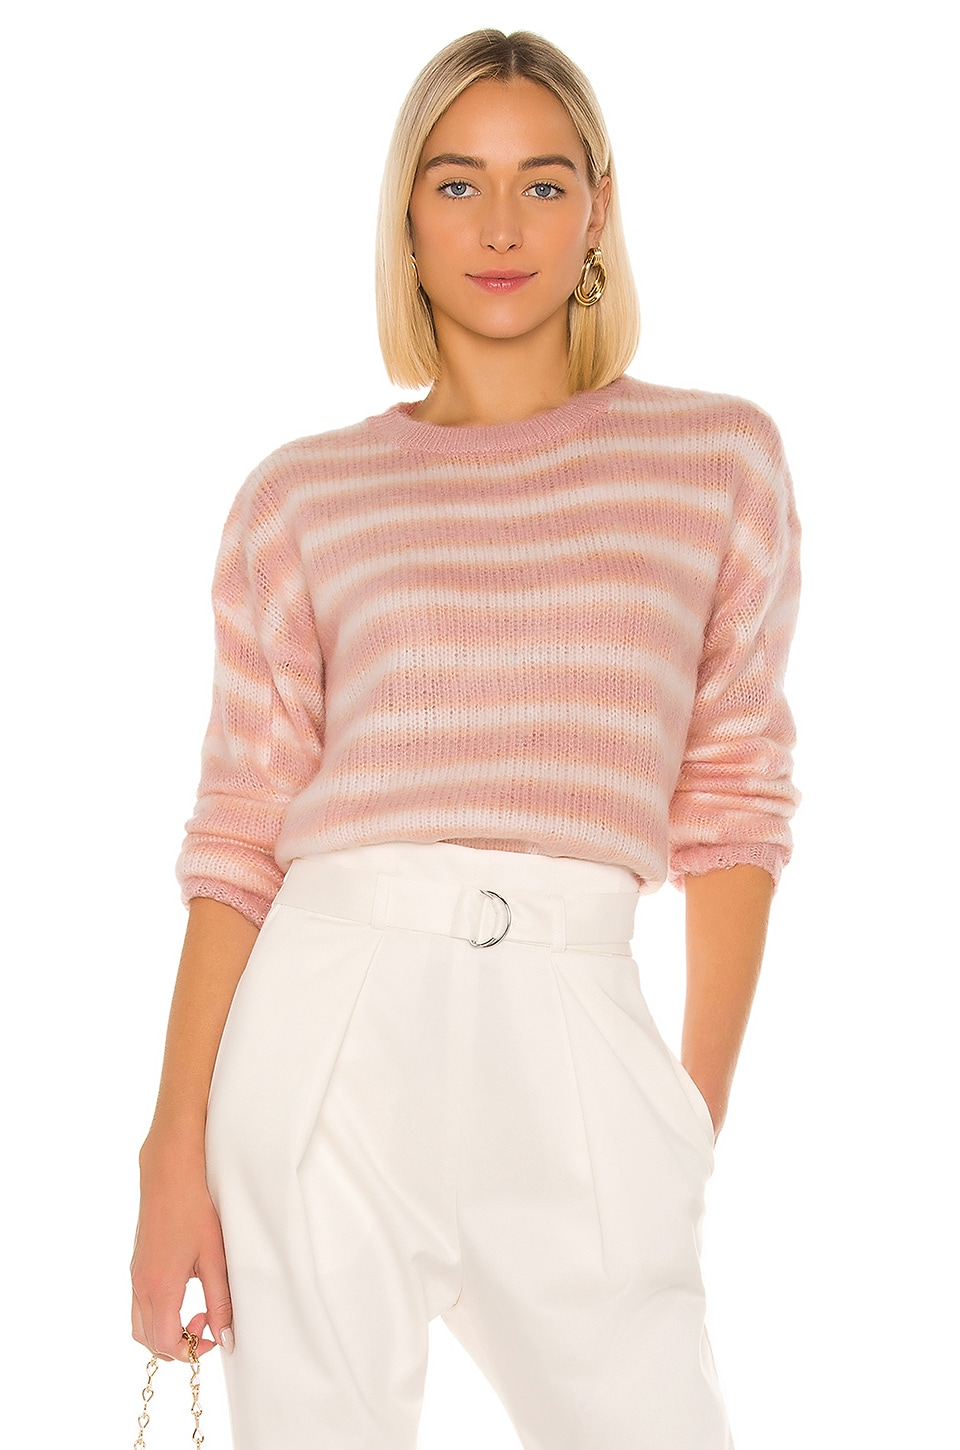 MAJORELLE Allie Sweater in Pink Lemon